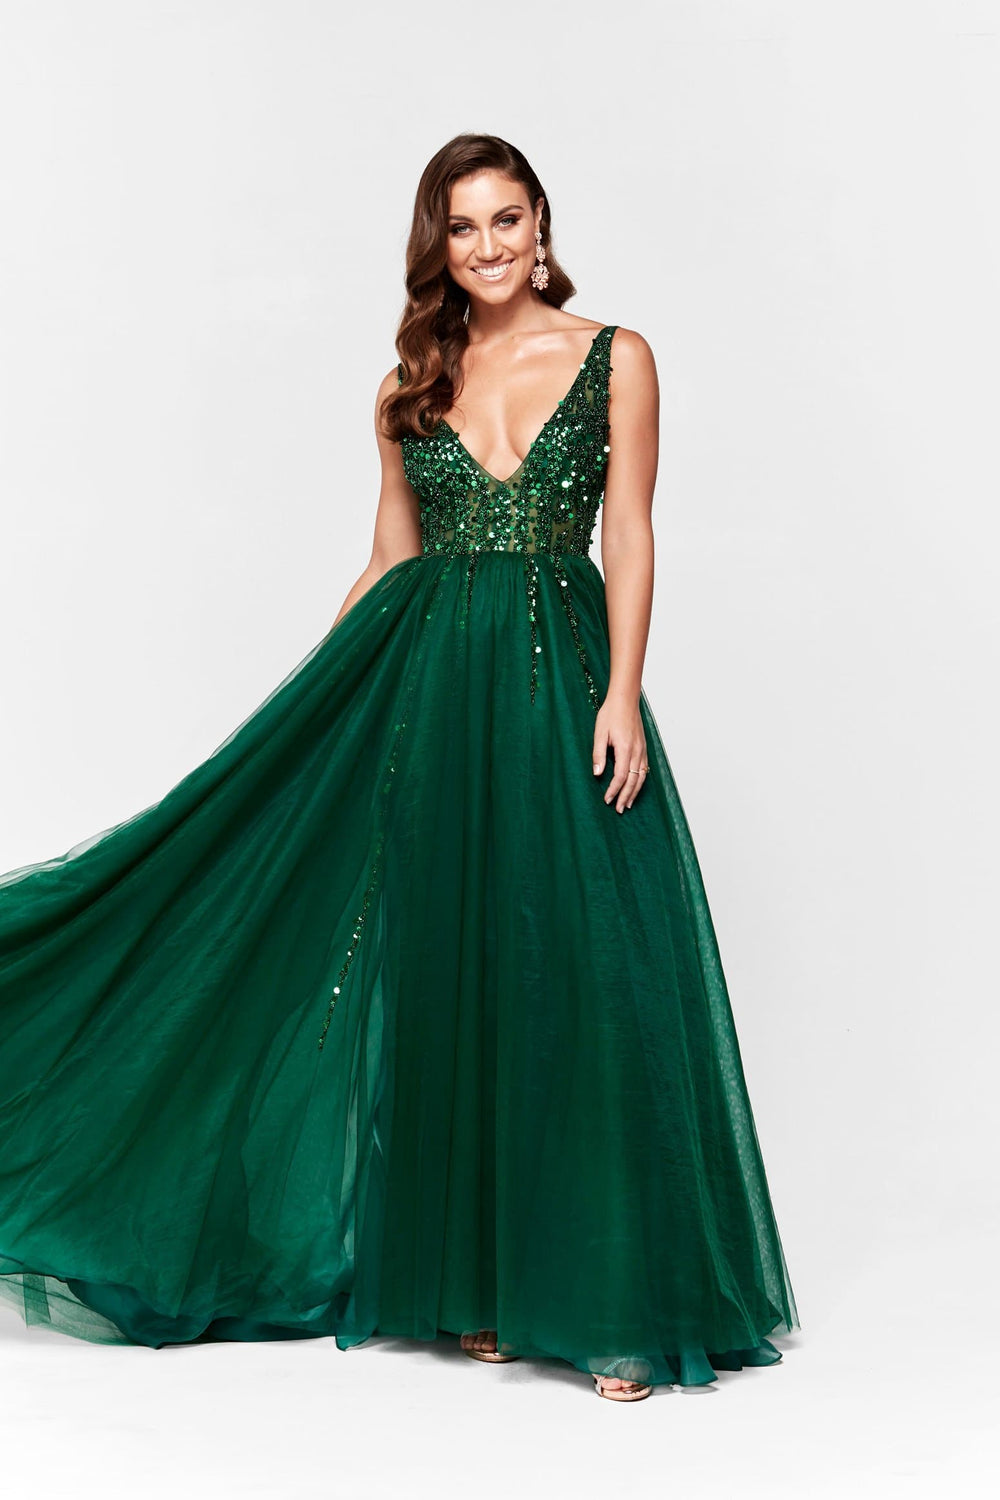 A&N Princessa Tulle V Neck Gown - Emerald